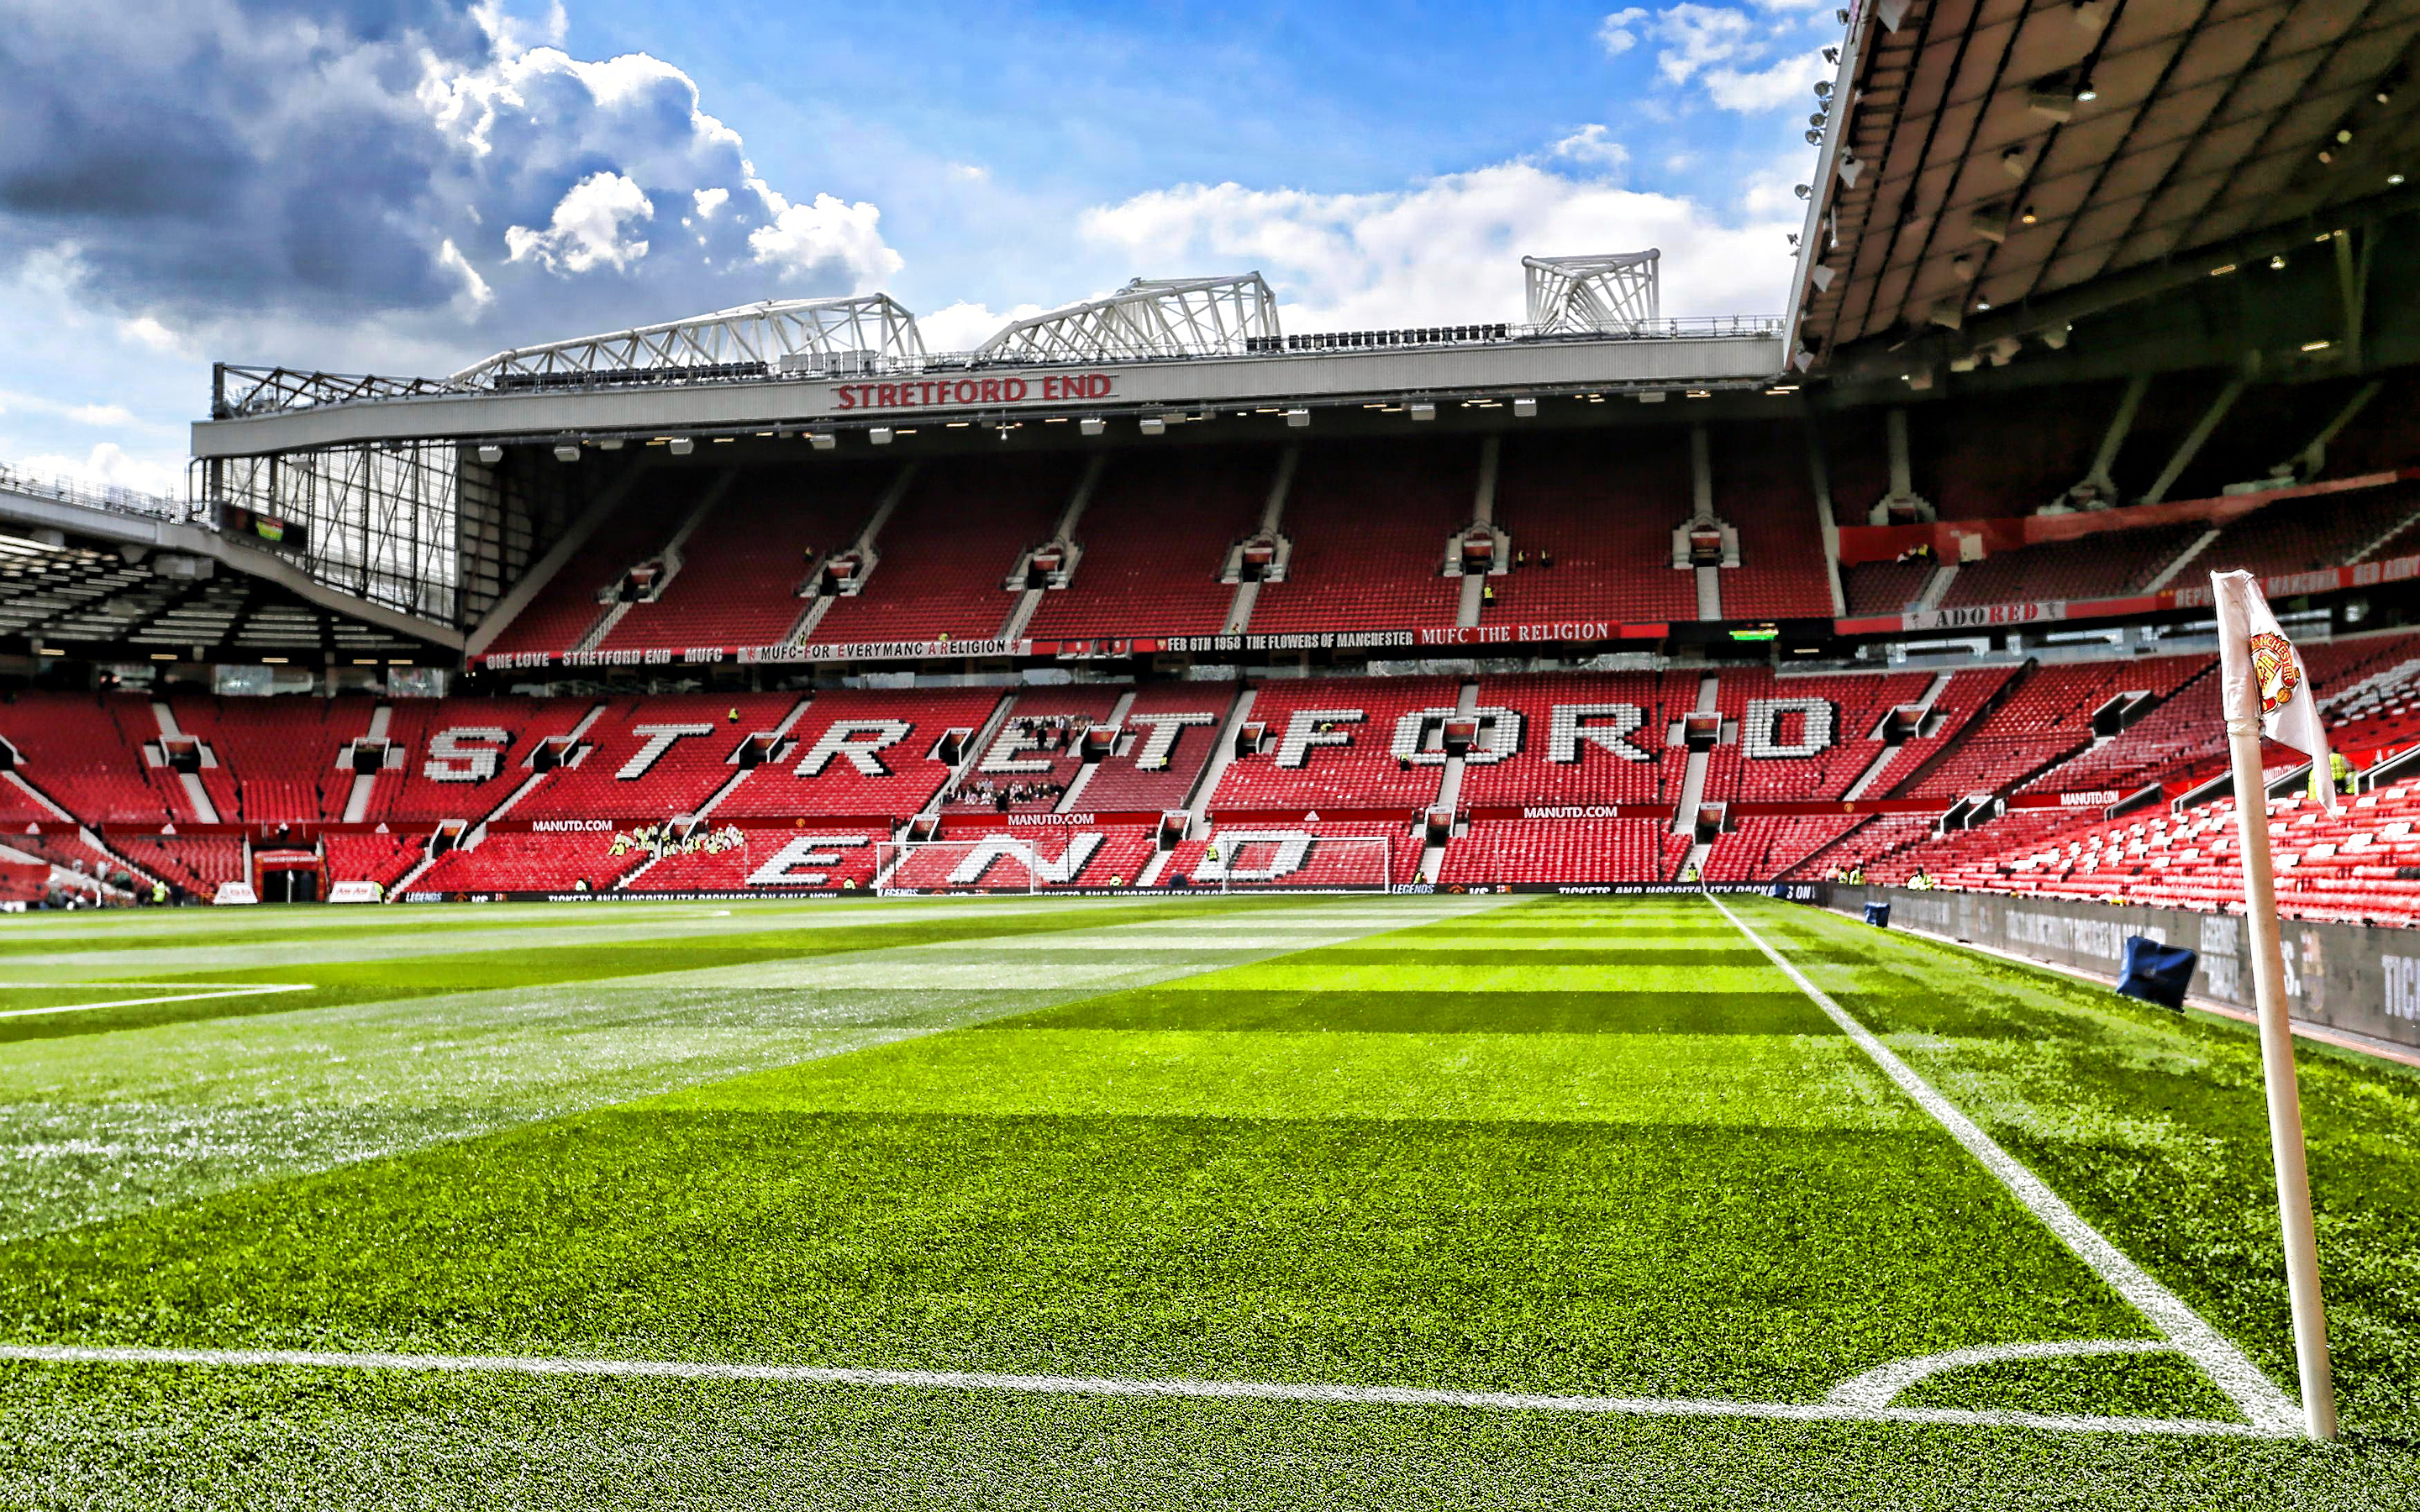 Man United S Old Trafford Stadium Hd Wallpapers For Pc Free Download